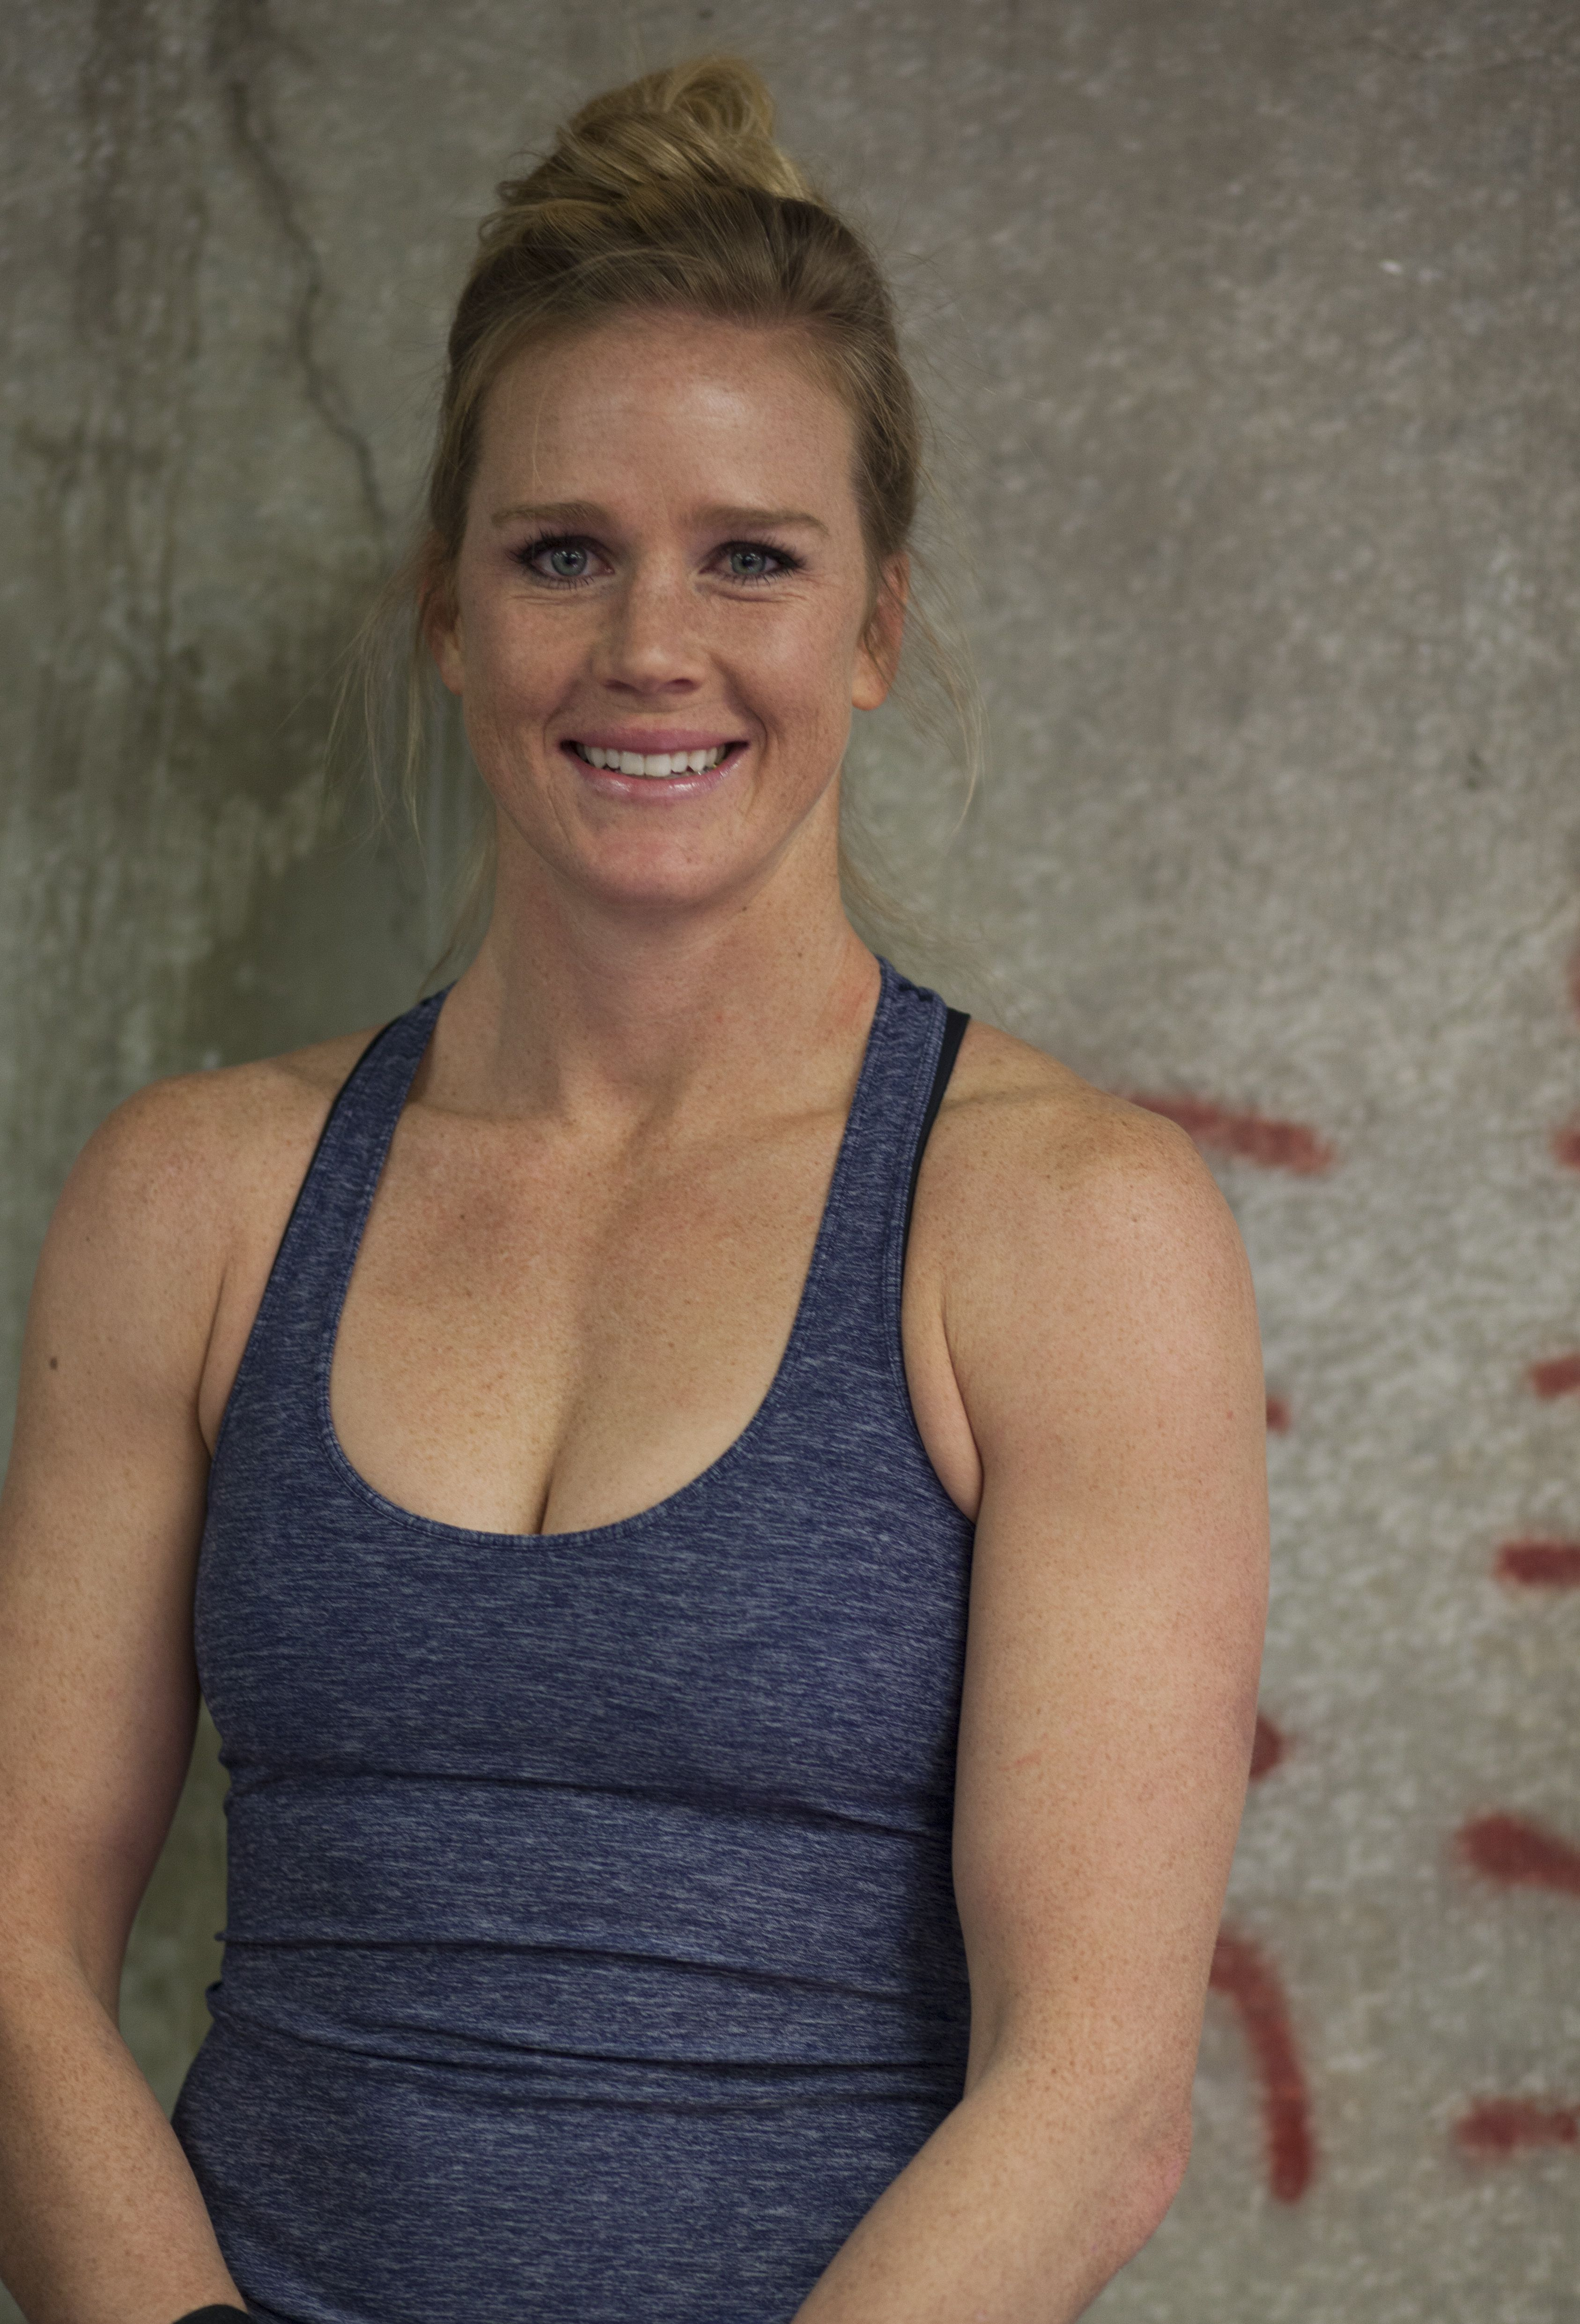 76b496e1a980 Holly Holm - professional boxer. | Holly Holm | Holly holm, Holly ...